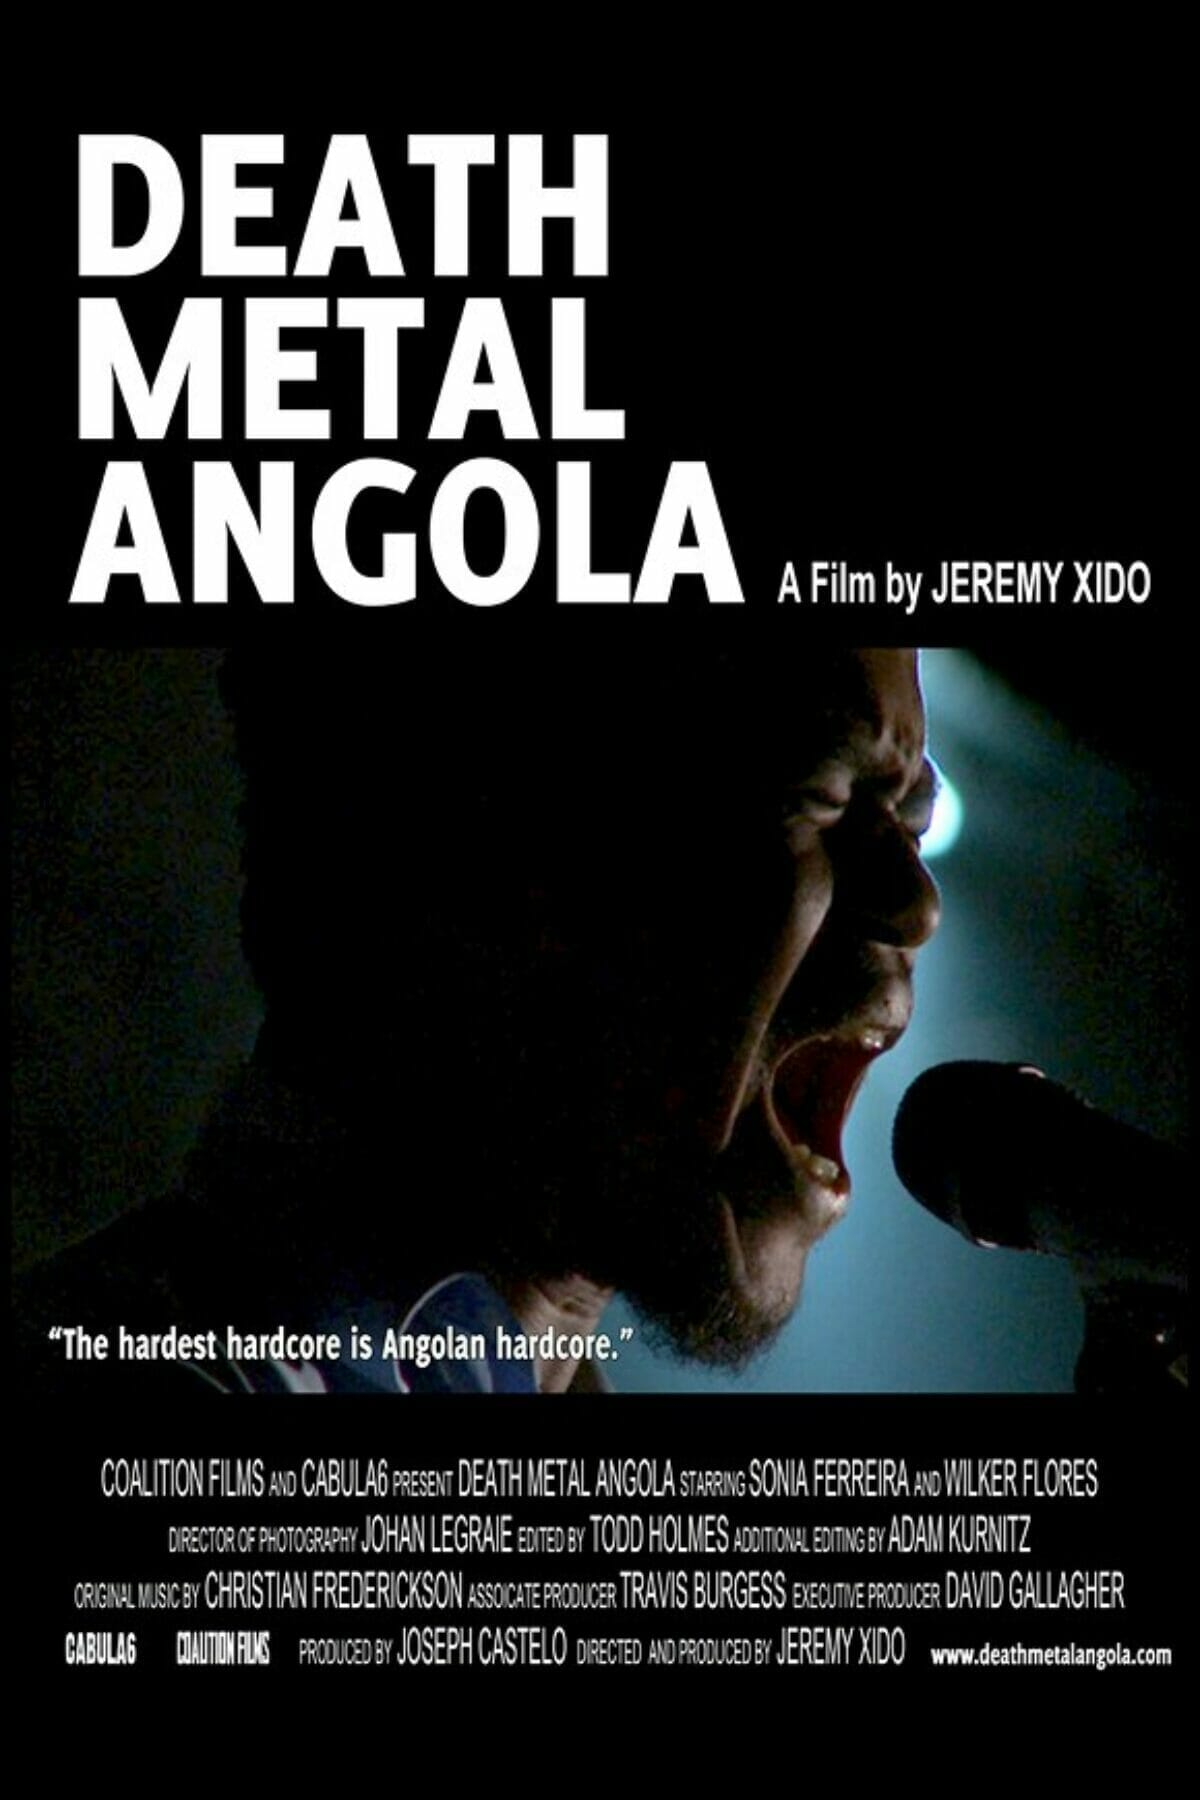 Death-metal-Angola-poster